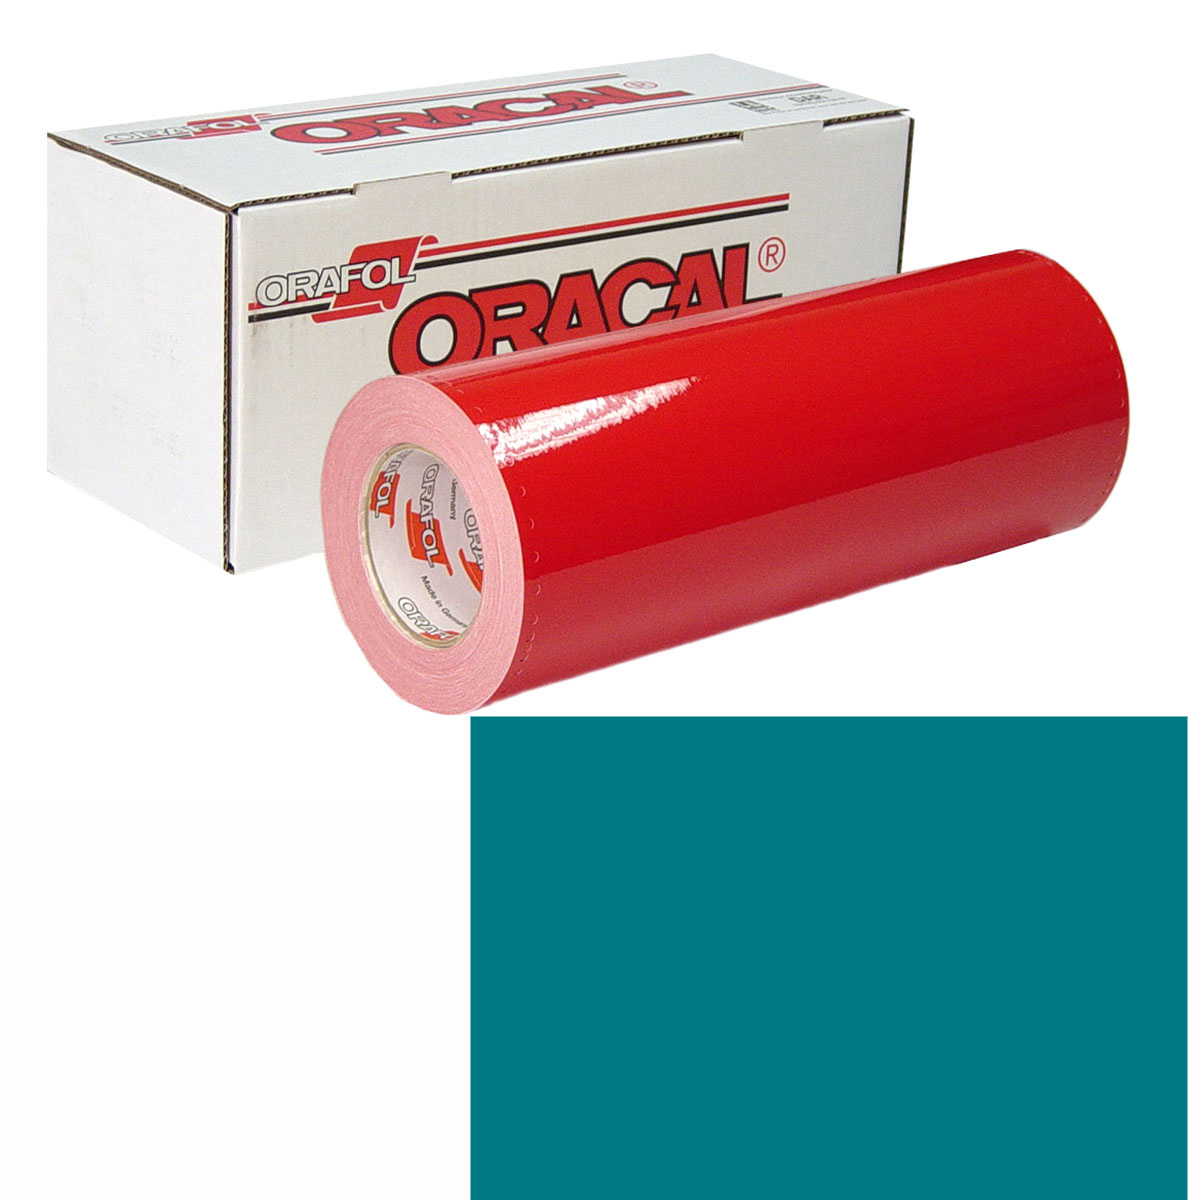 ORACAL 951M 15In X 50Yd 199 Turquoise Met